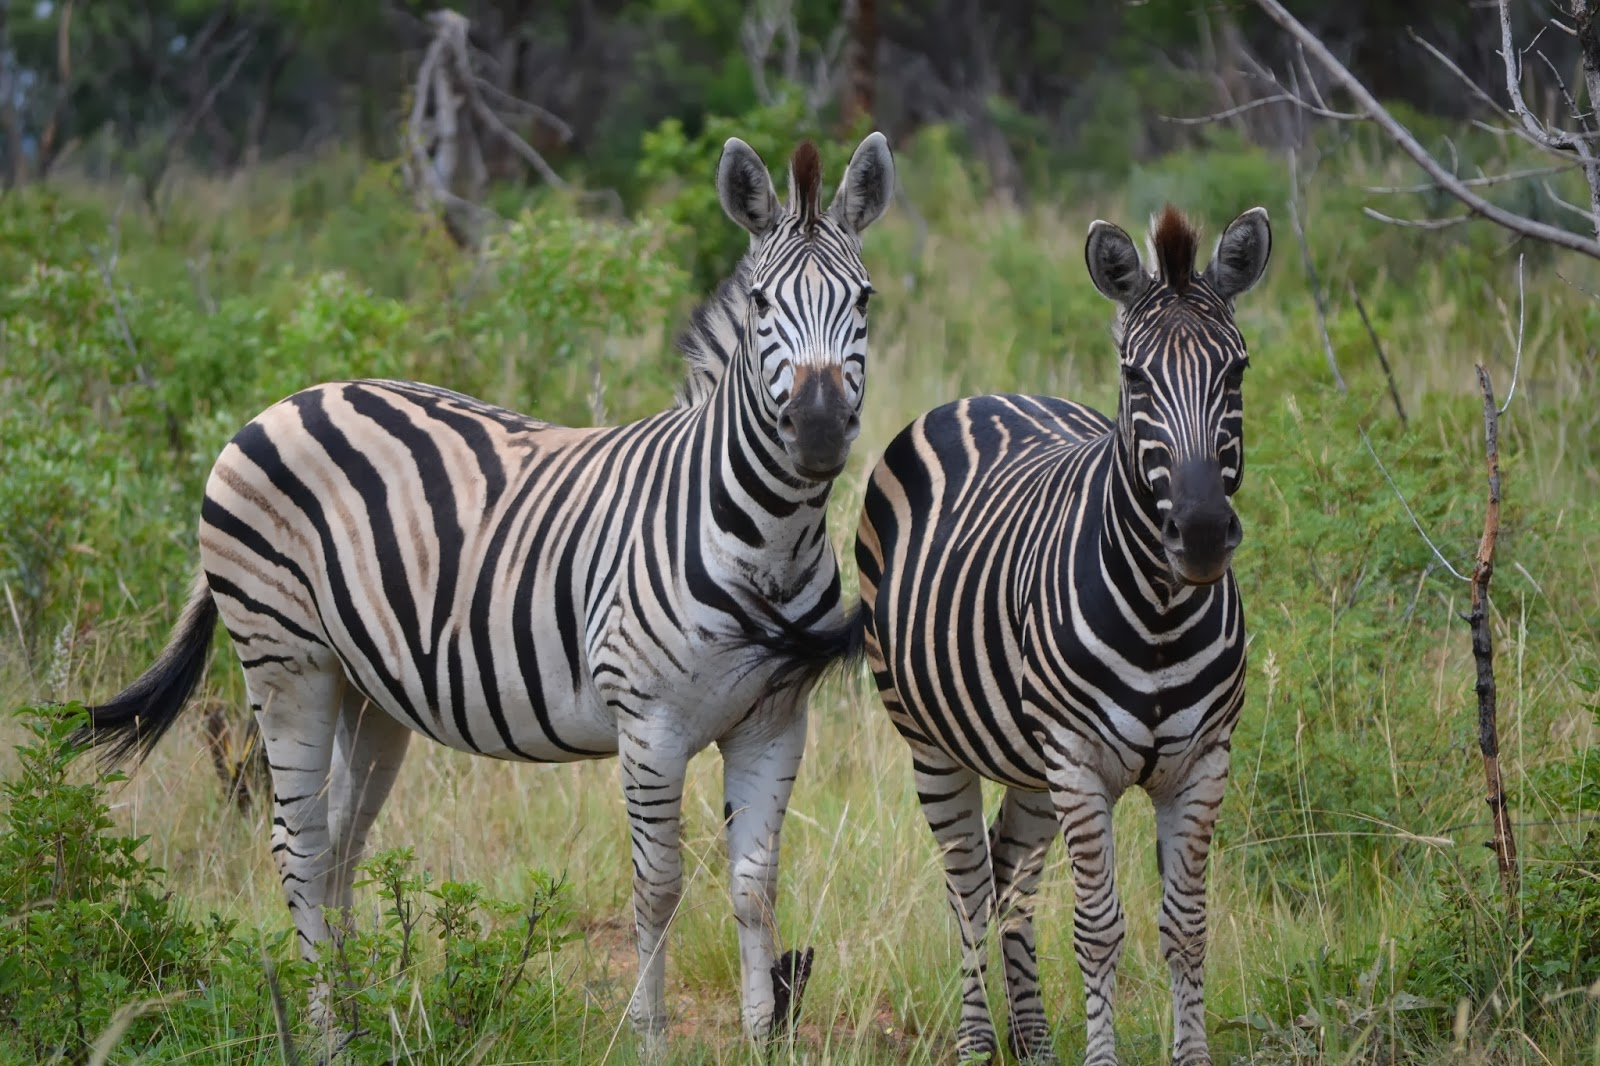 White zebra with black stripes and black zebra with white stripes